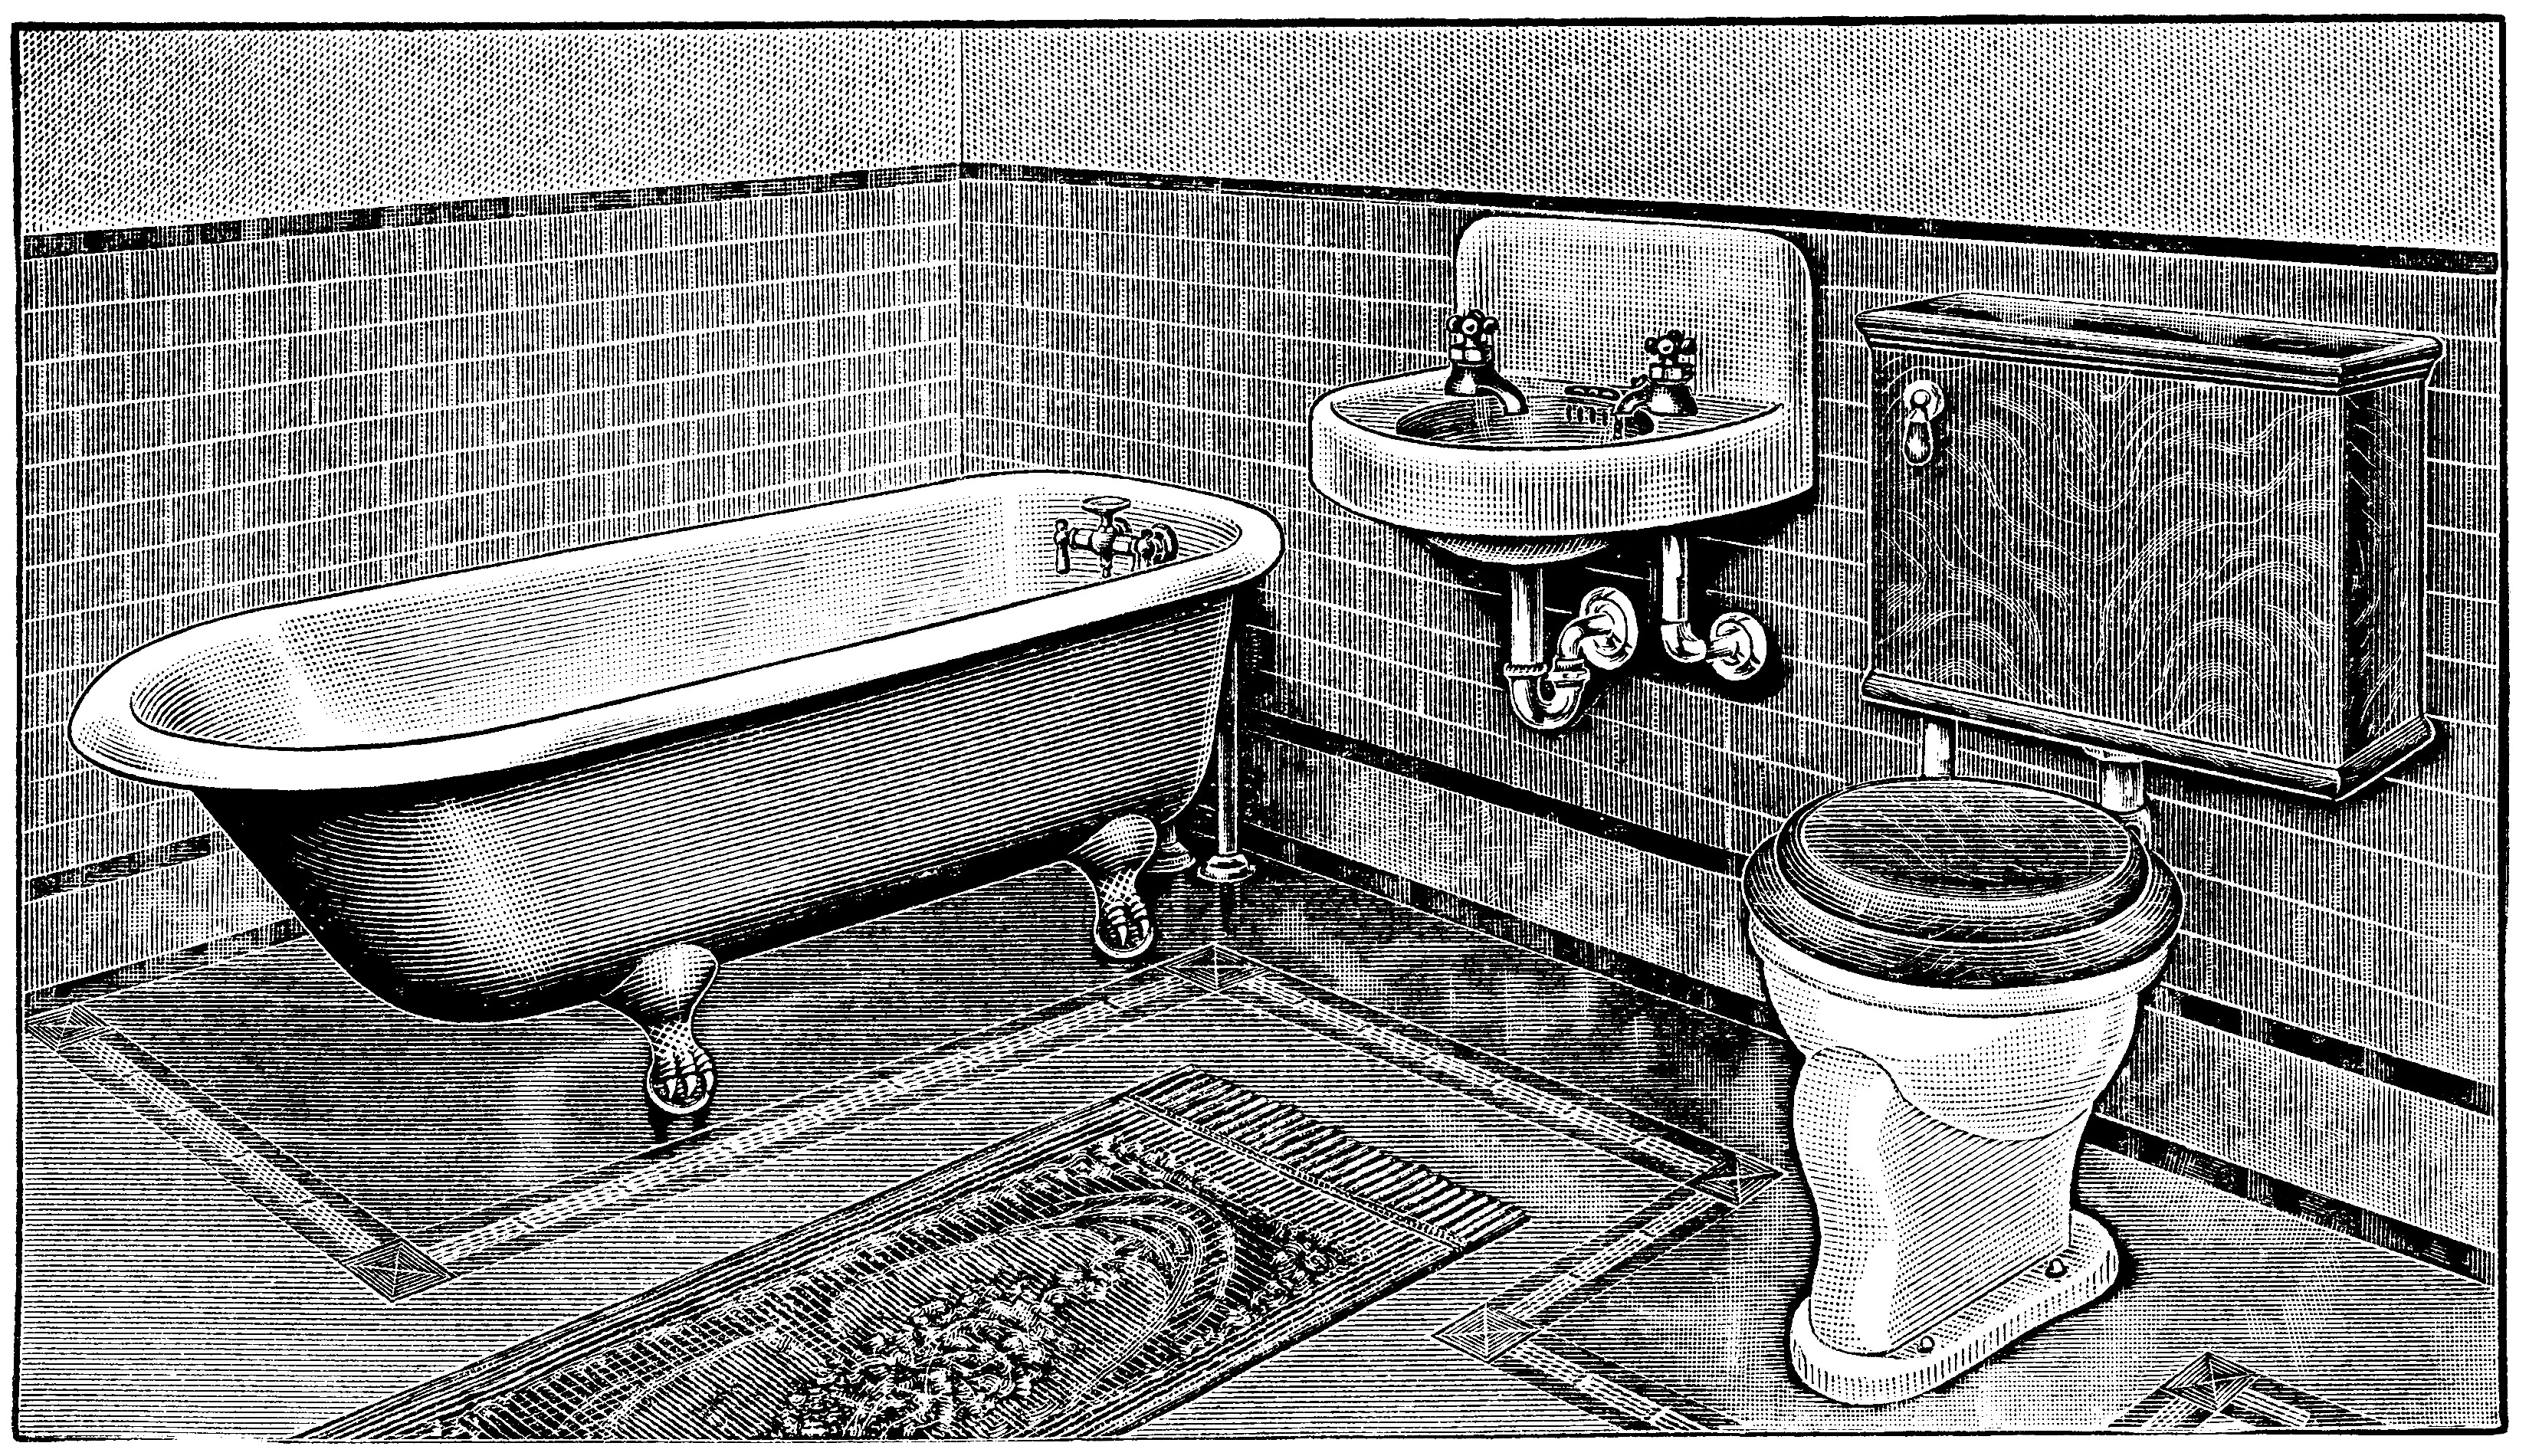 Here Is A Black And White Clip Art Version Vintage Bathroom Claw Foot Tub Illus Antique Toilet Restroom